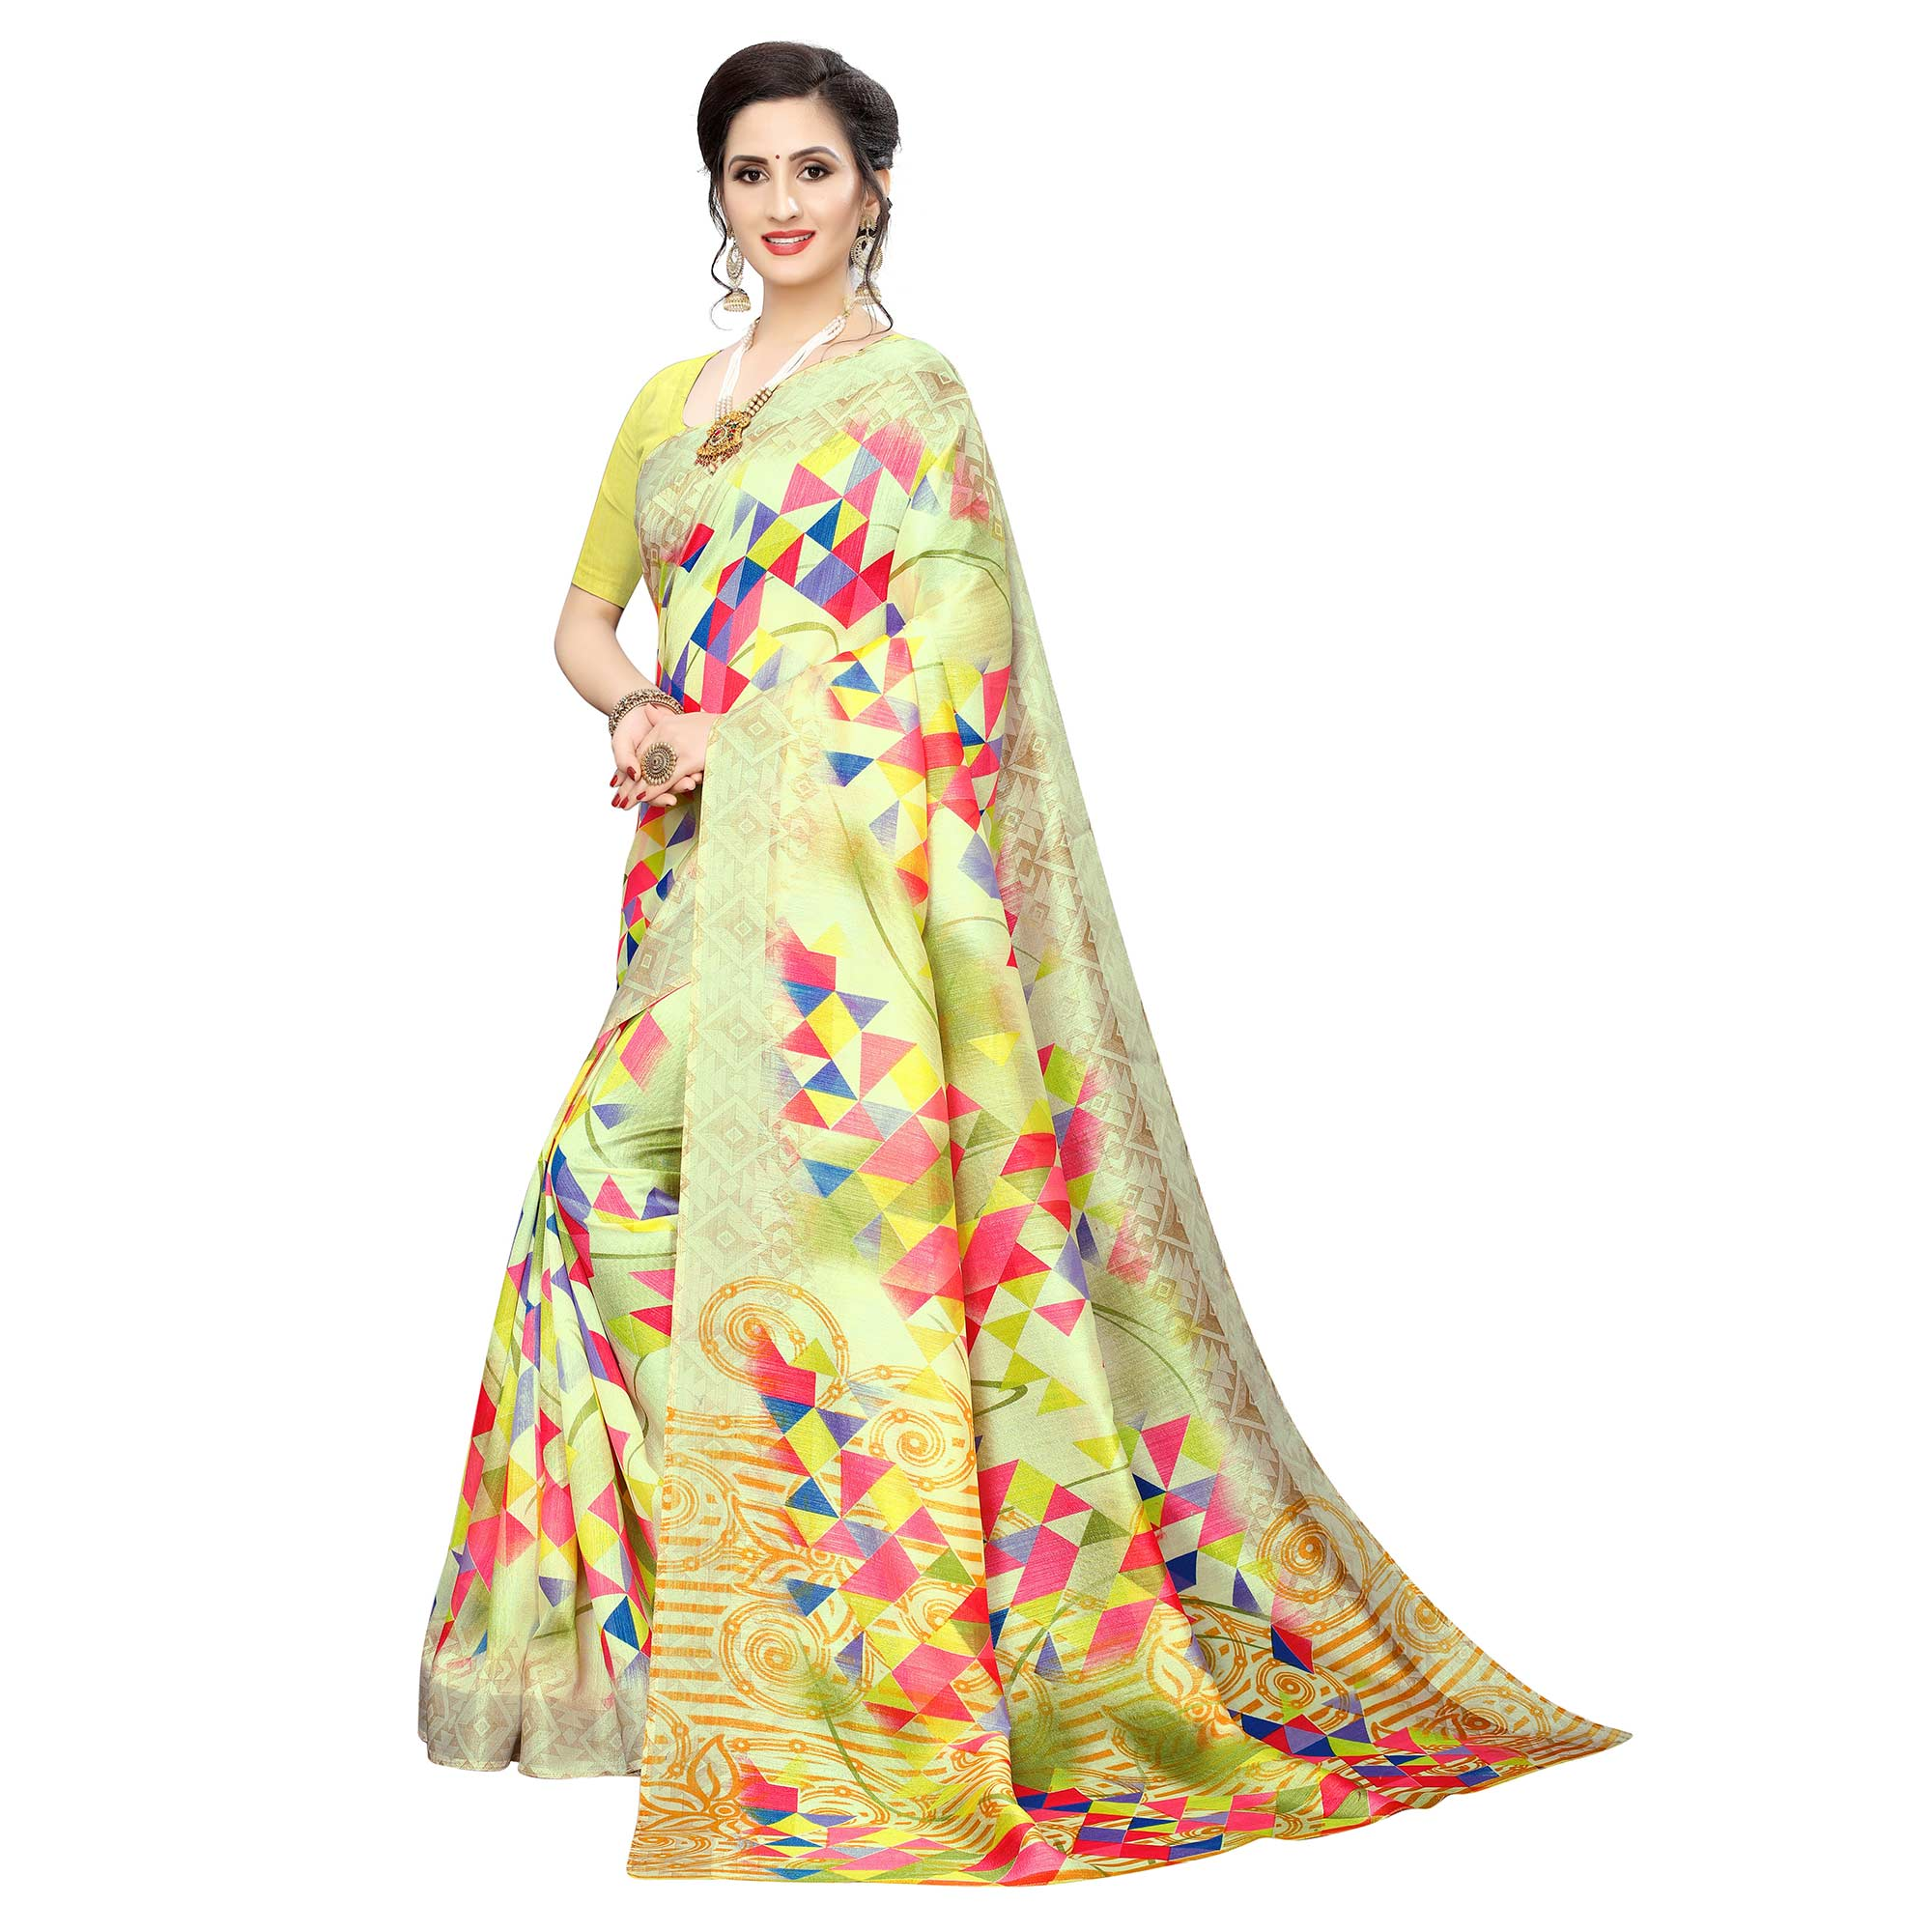 Engrossing Yellow Colored Casual Wear Geometric Printed Cotton Silk Saree